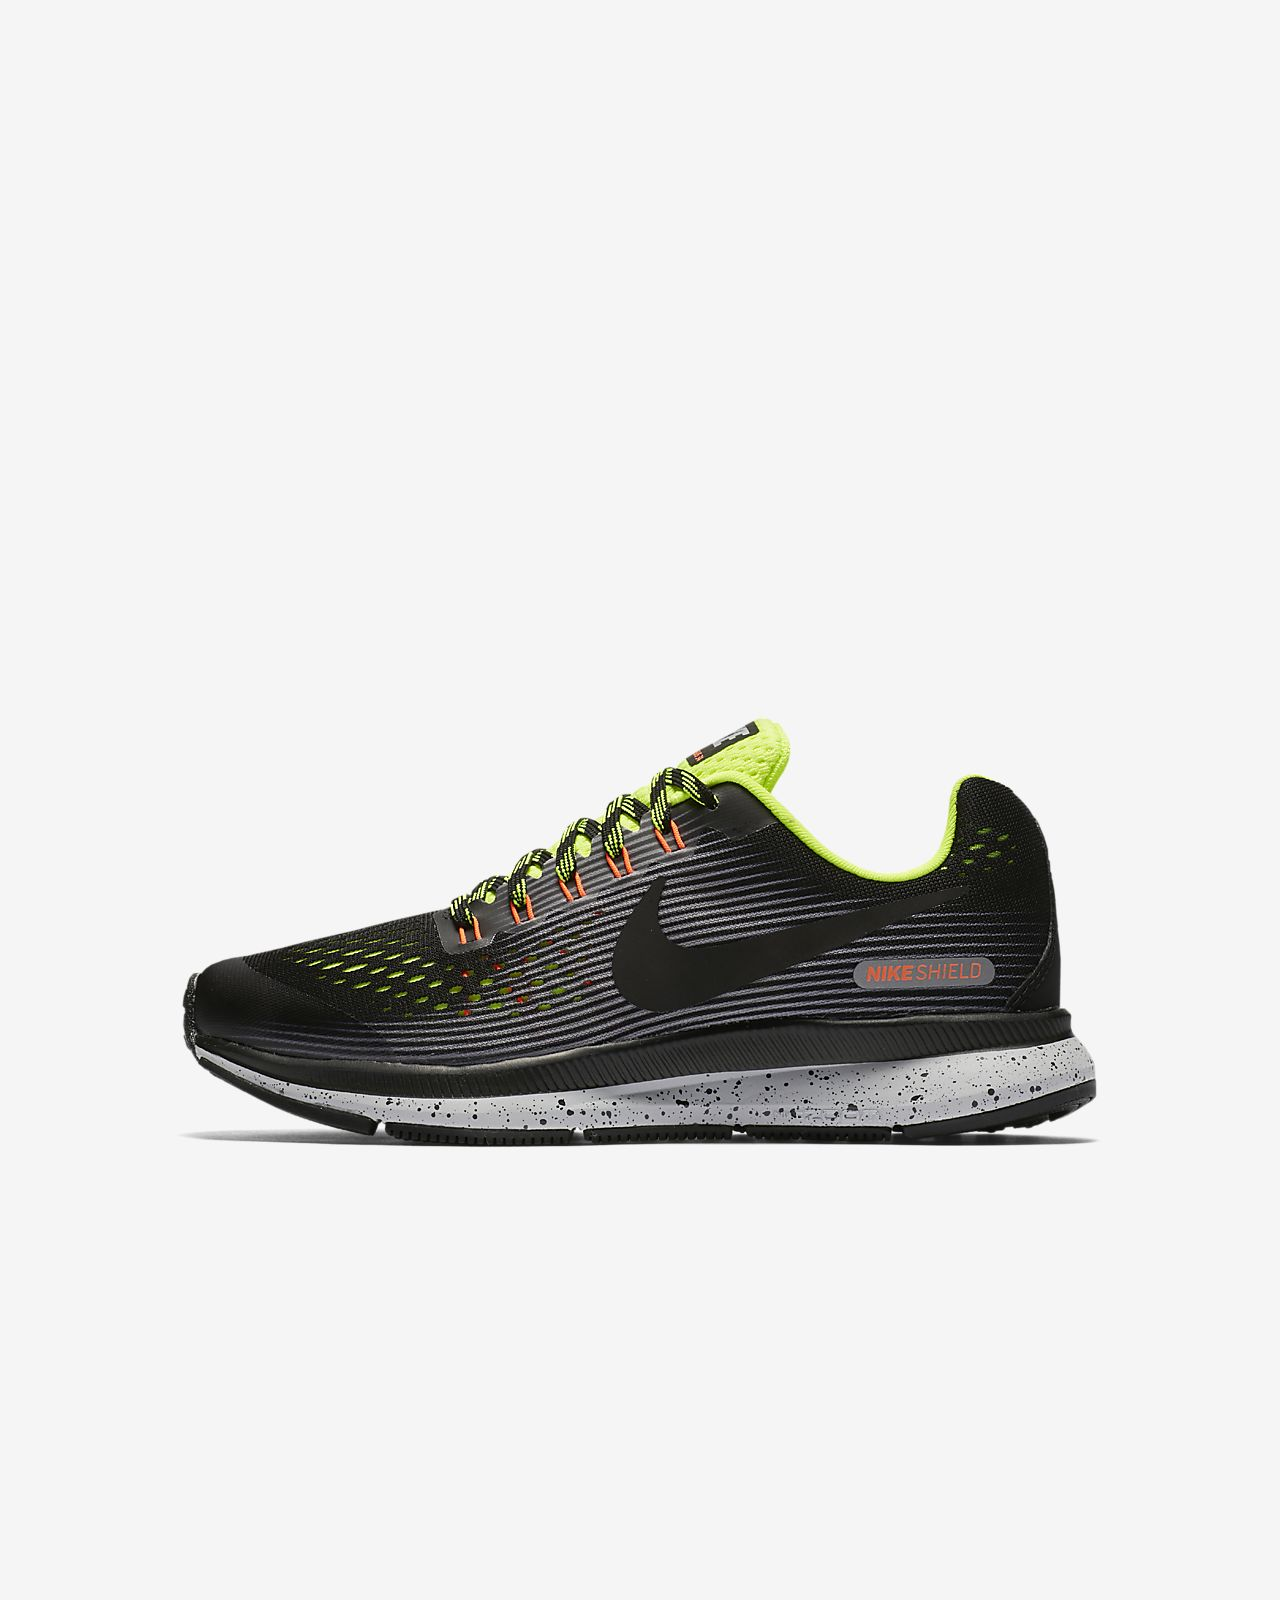 nike air zoom pegasus 34 id men's running shoe